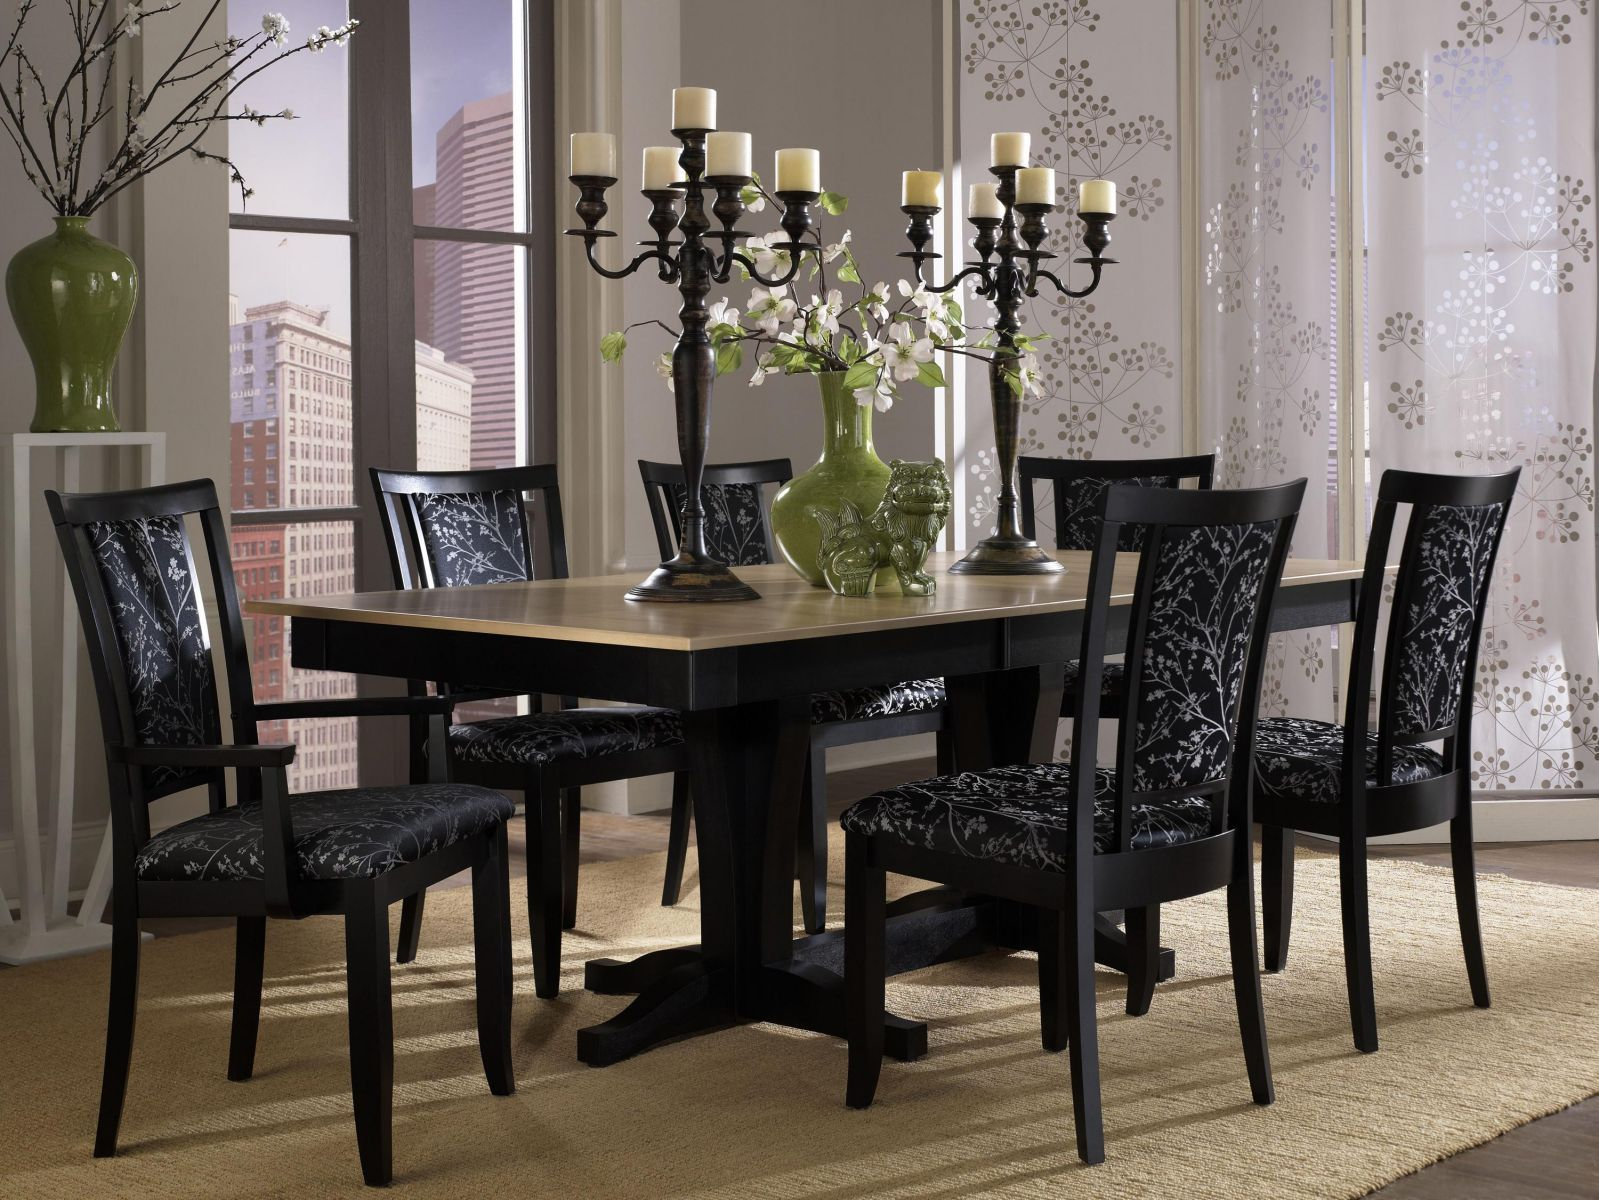 Contemporary Round Dining Room Tables Beauteous Stylish Dining Room Set Idea With Black Floral Upholstered Chairs Review